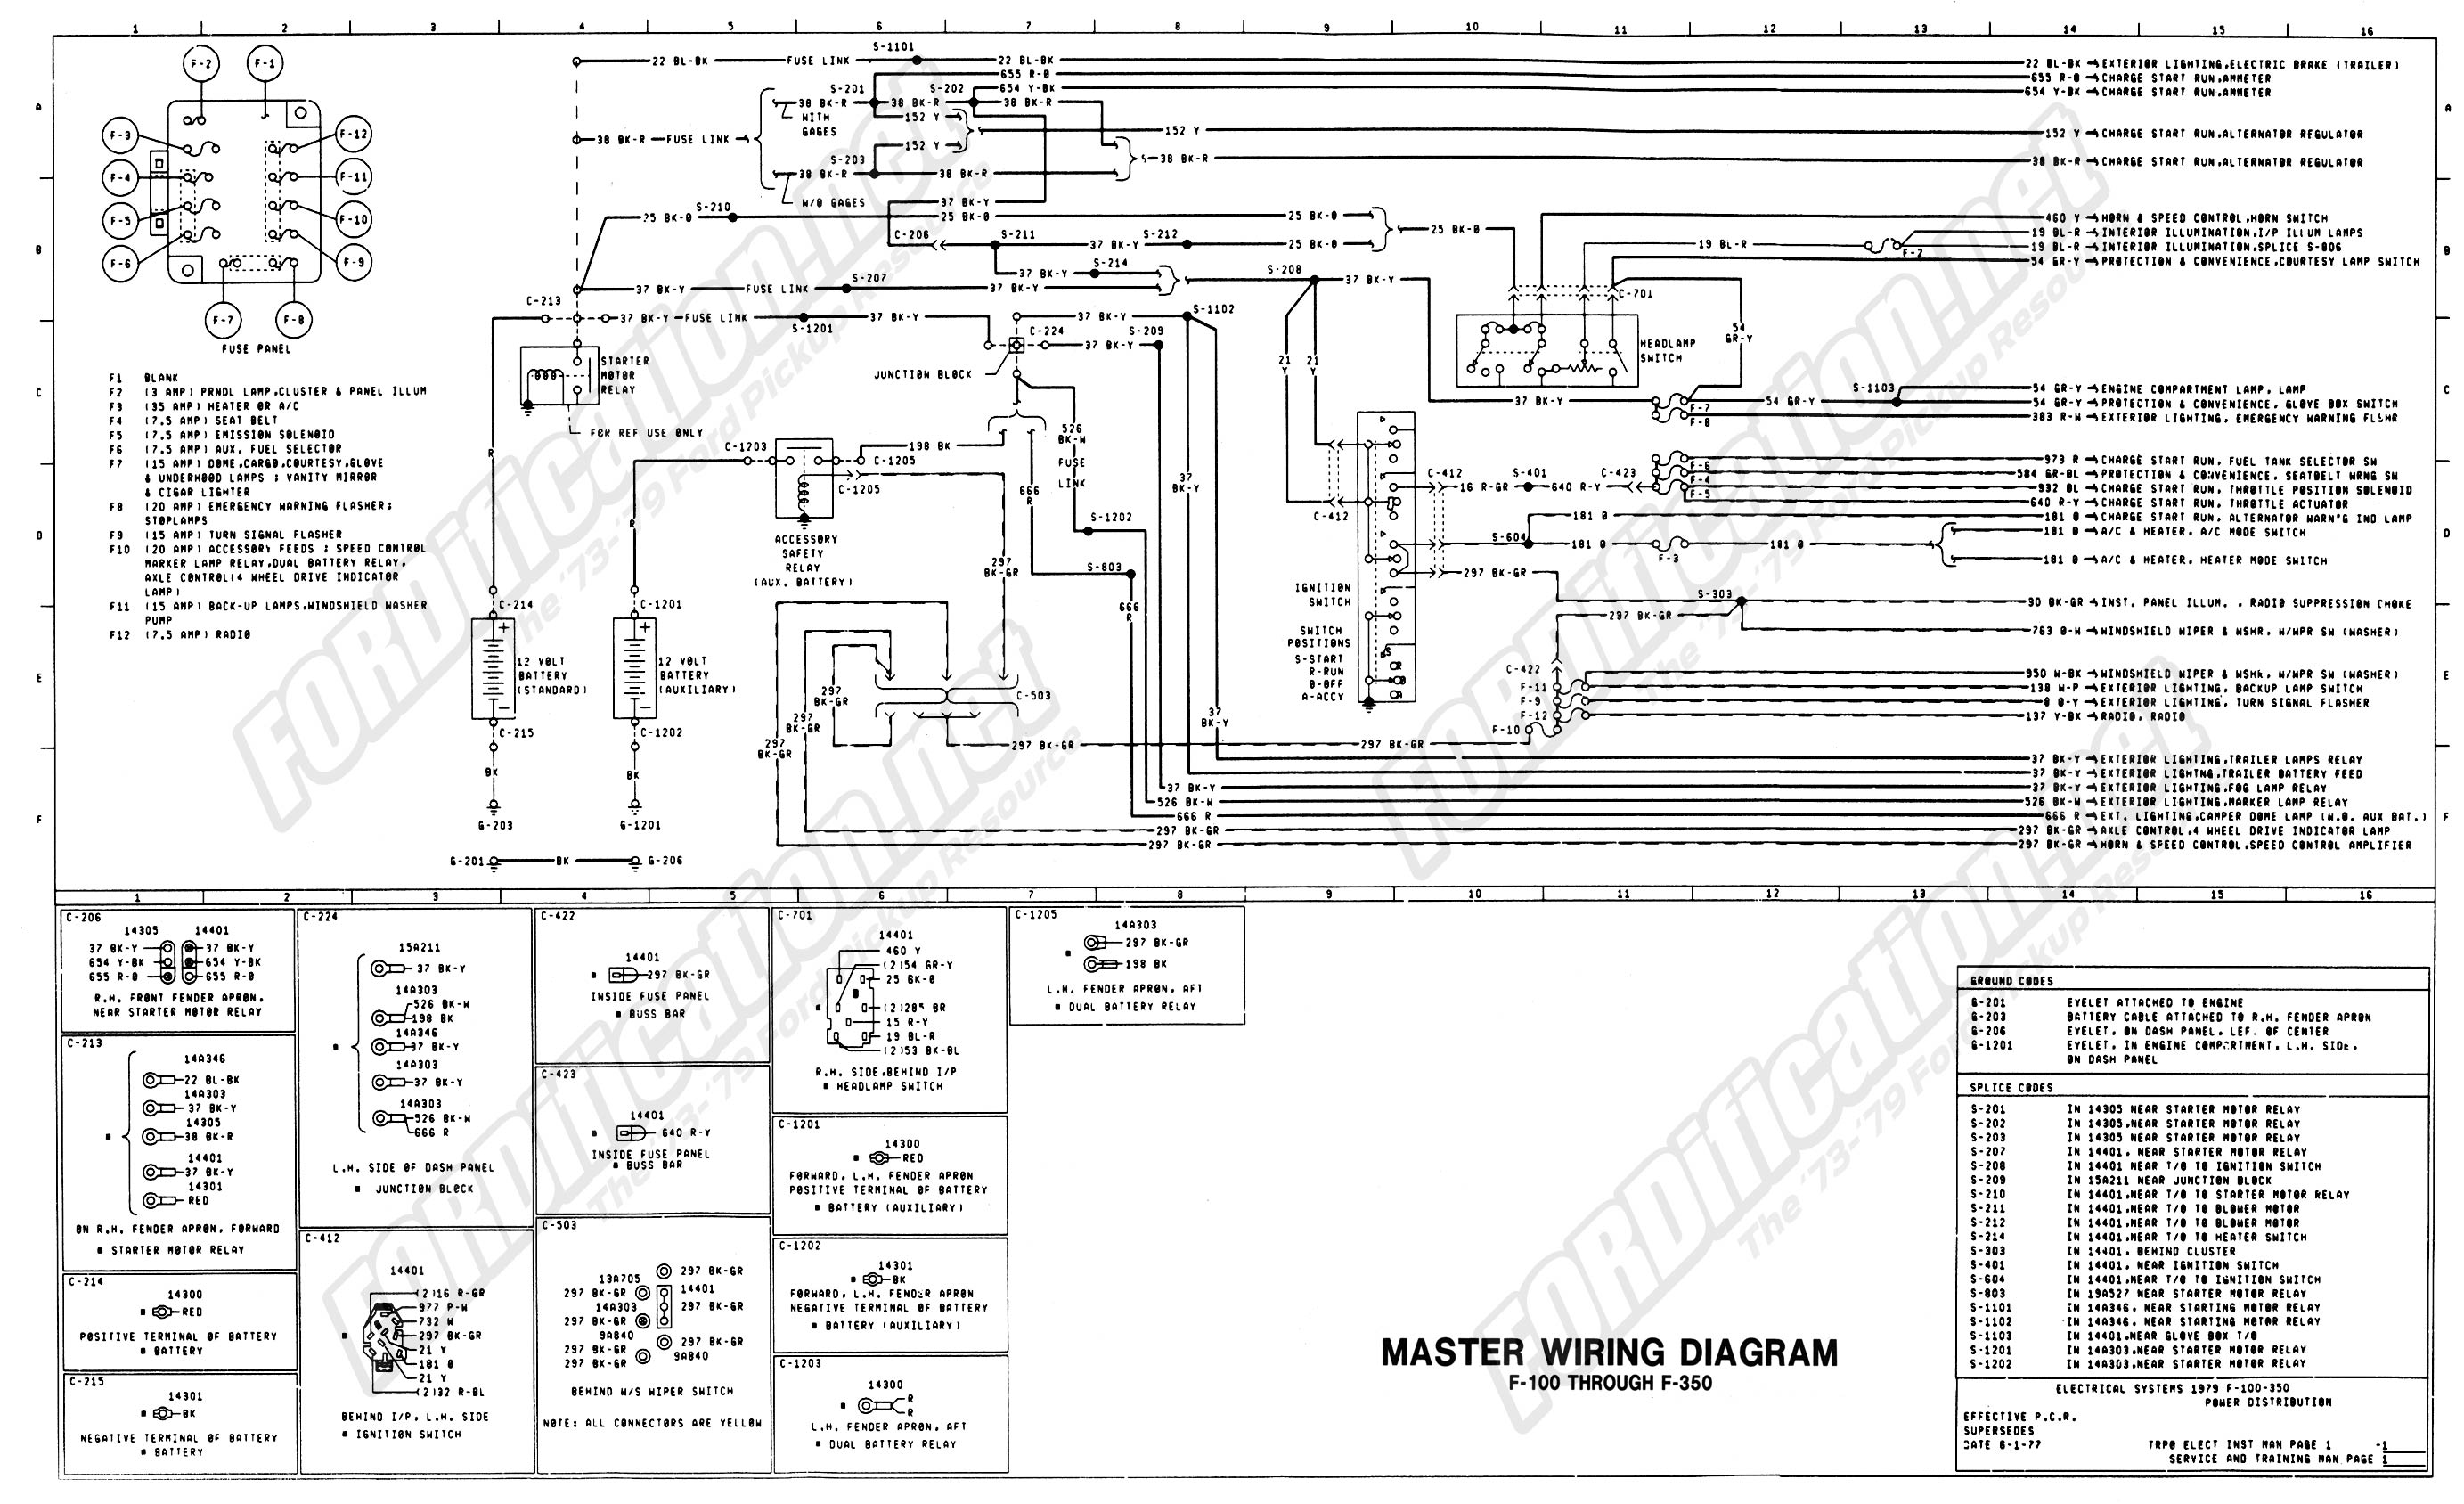 wiring_79master_1of9 1973 1979 ford truck wiring diagrams & schematics fordification net  at metegol.co